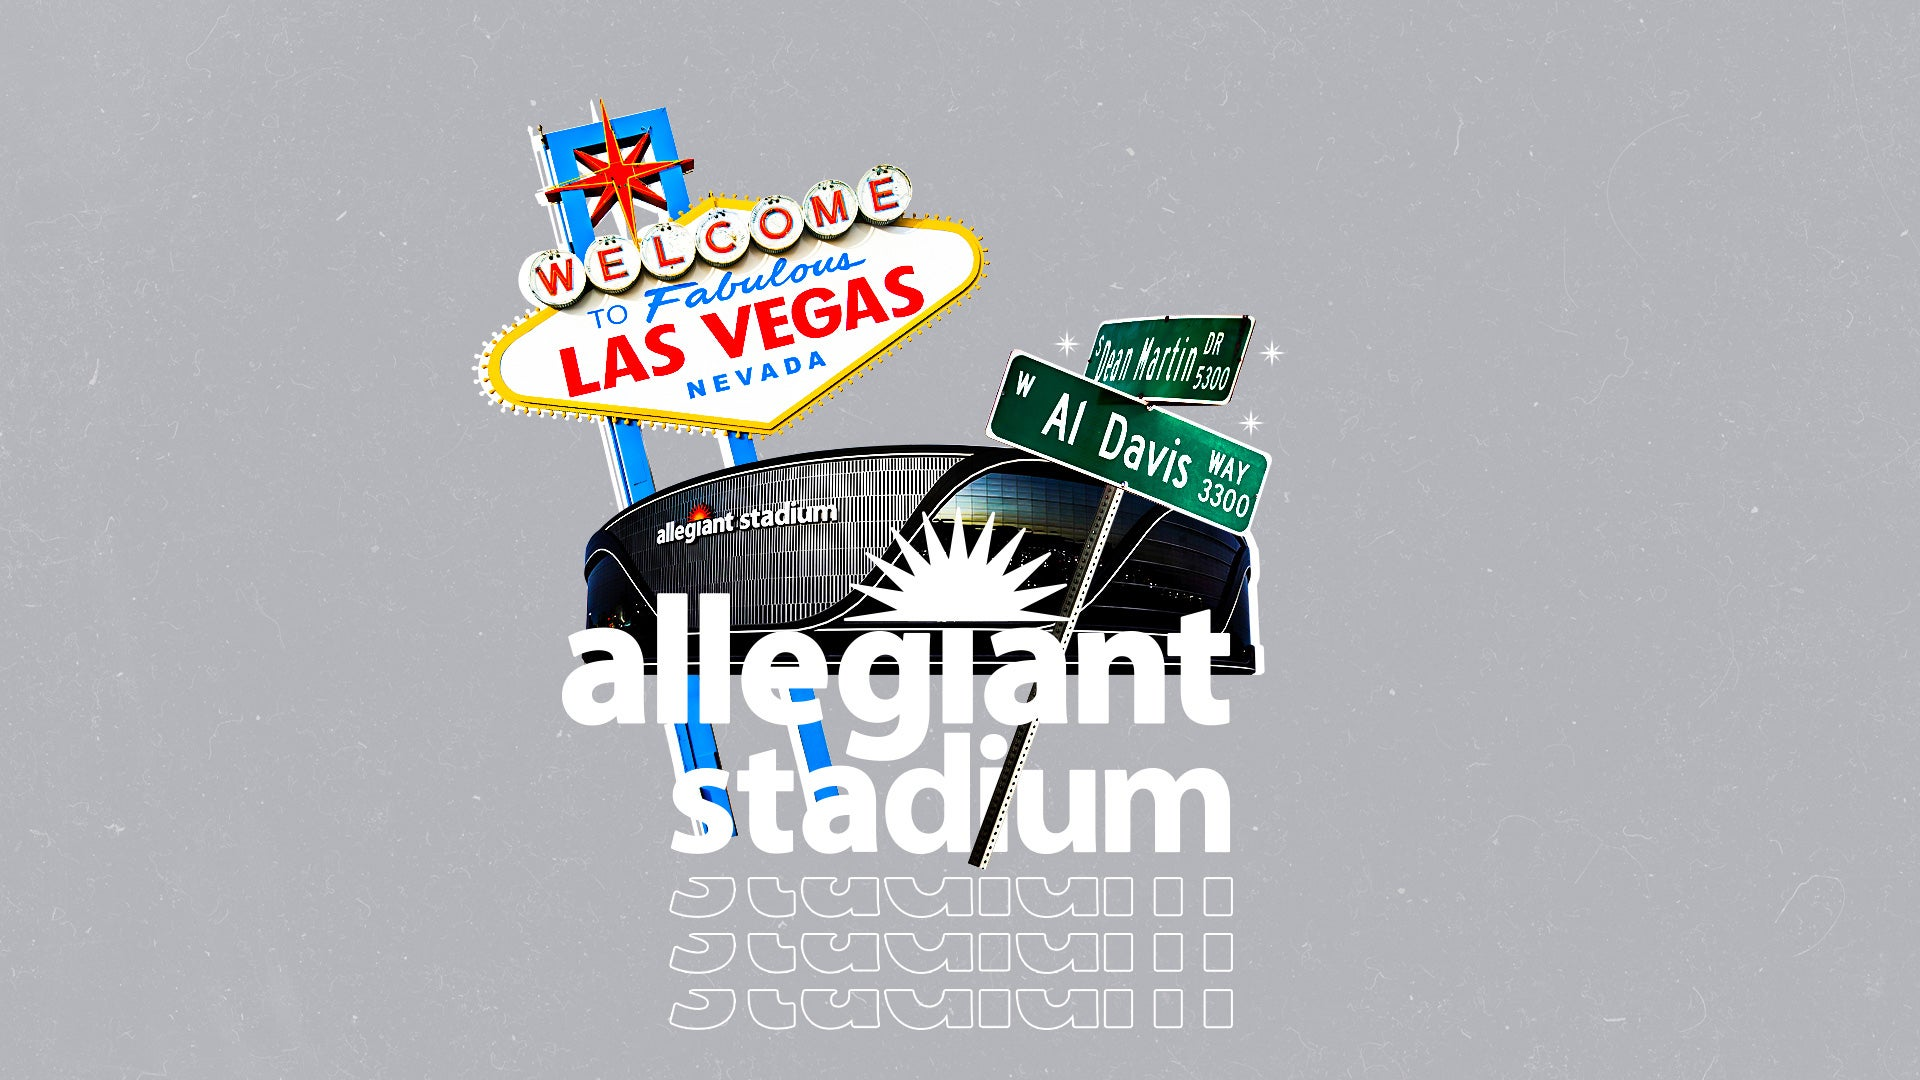 Allegiant Stadium Elvis Art Wallpaper